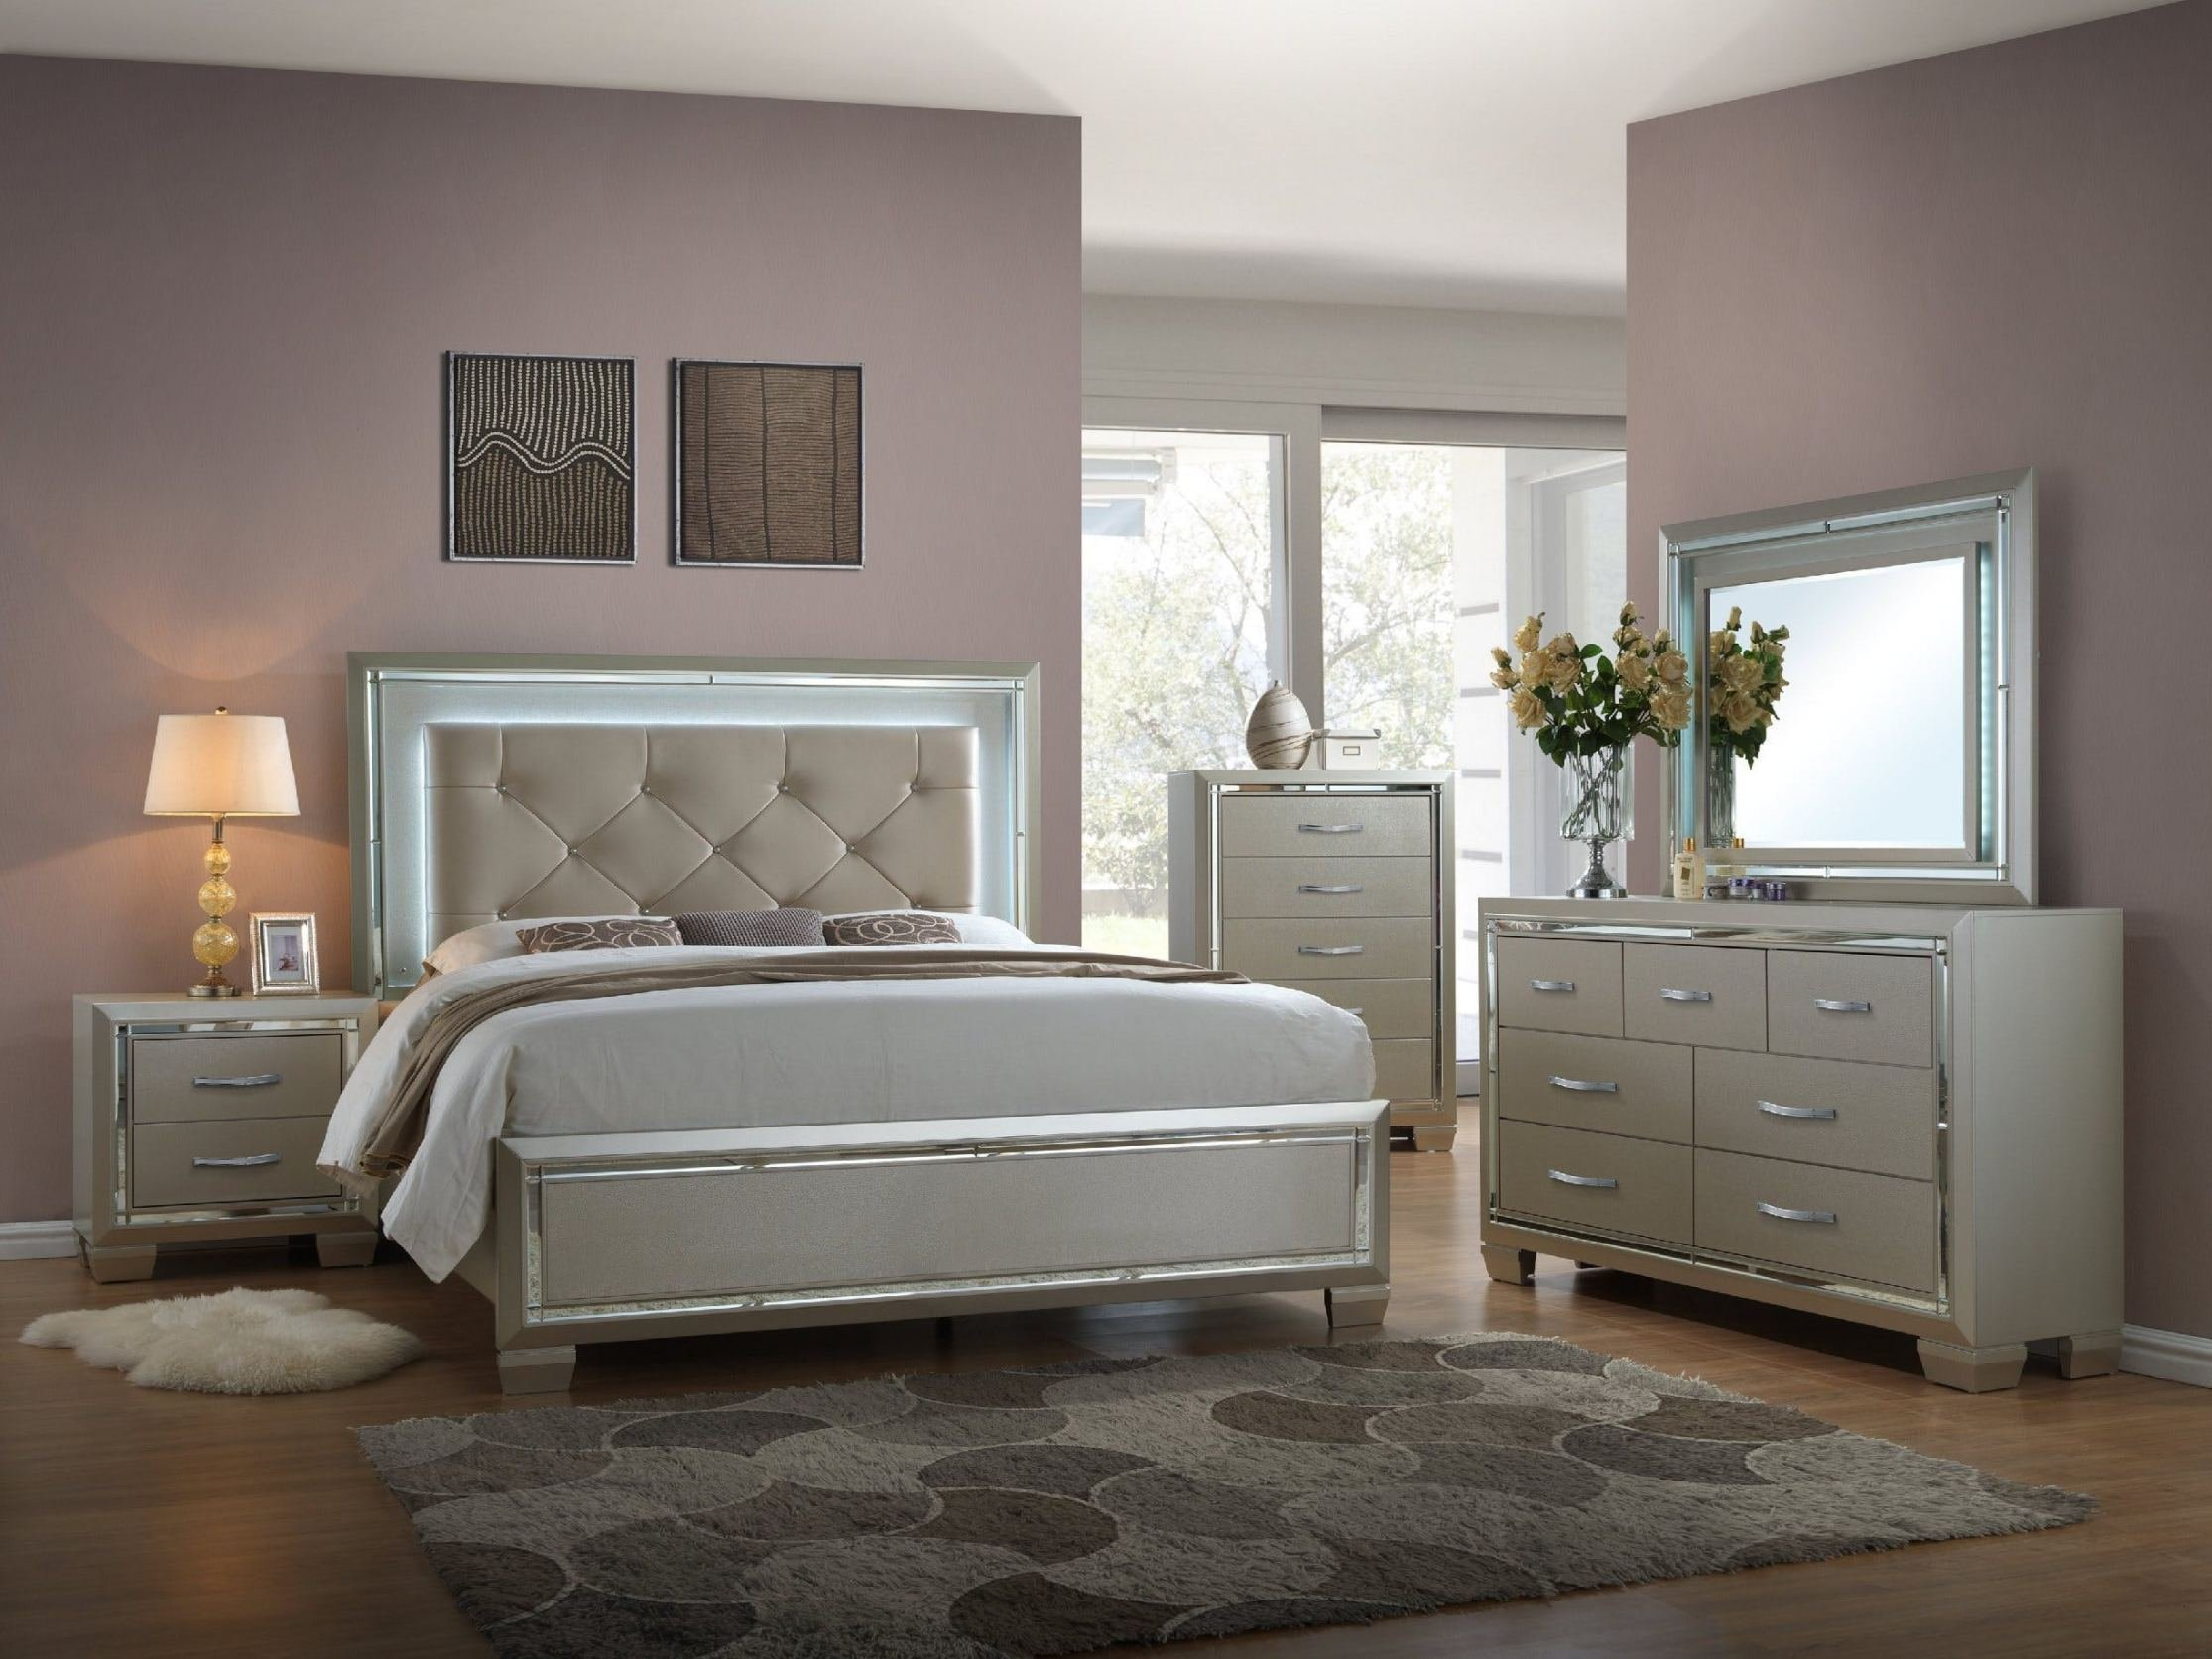 Best Bedroom Sets Syracuse Ny Bedroom Sets Syracuse Ny 4 With Pictures